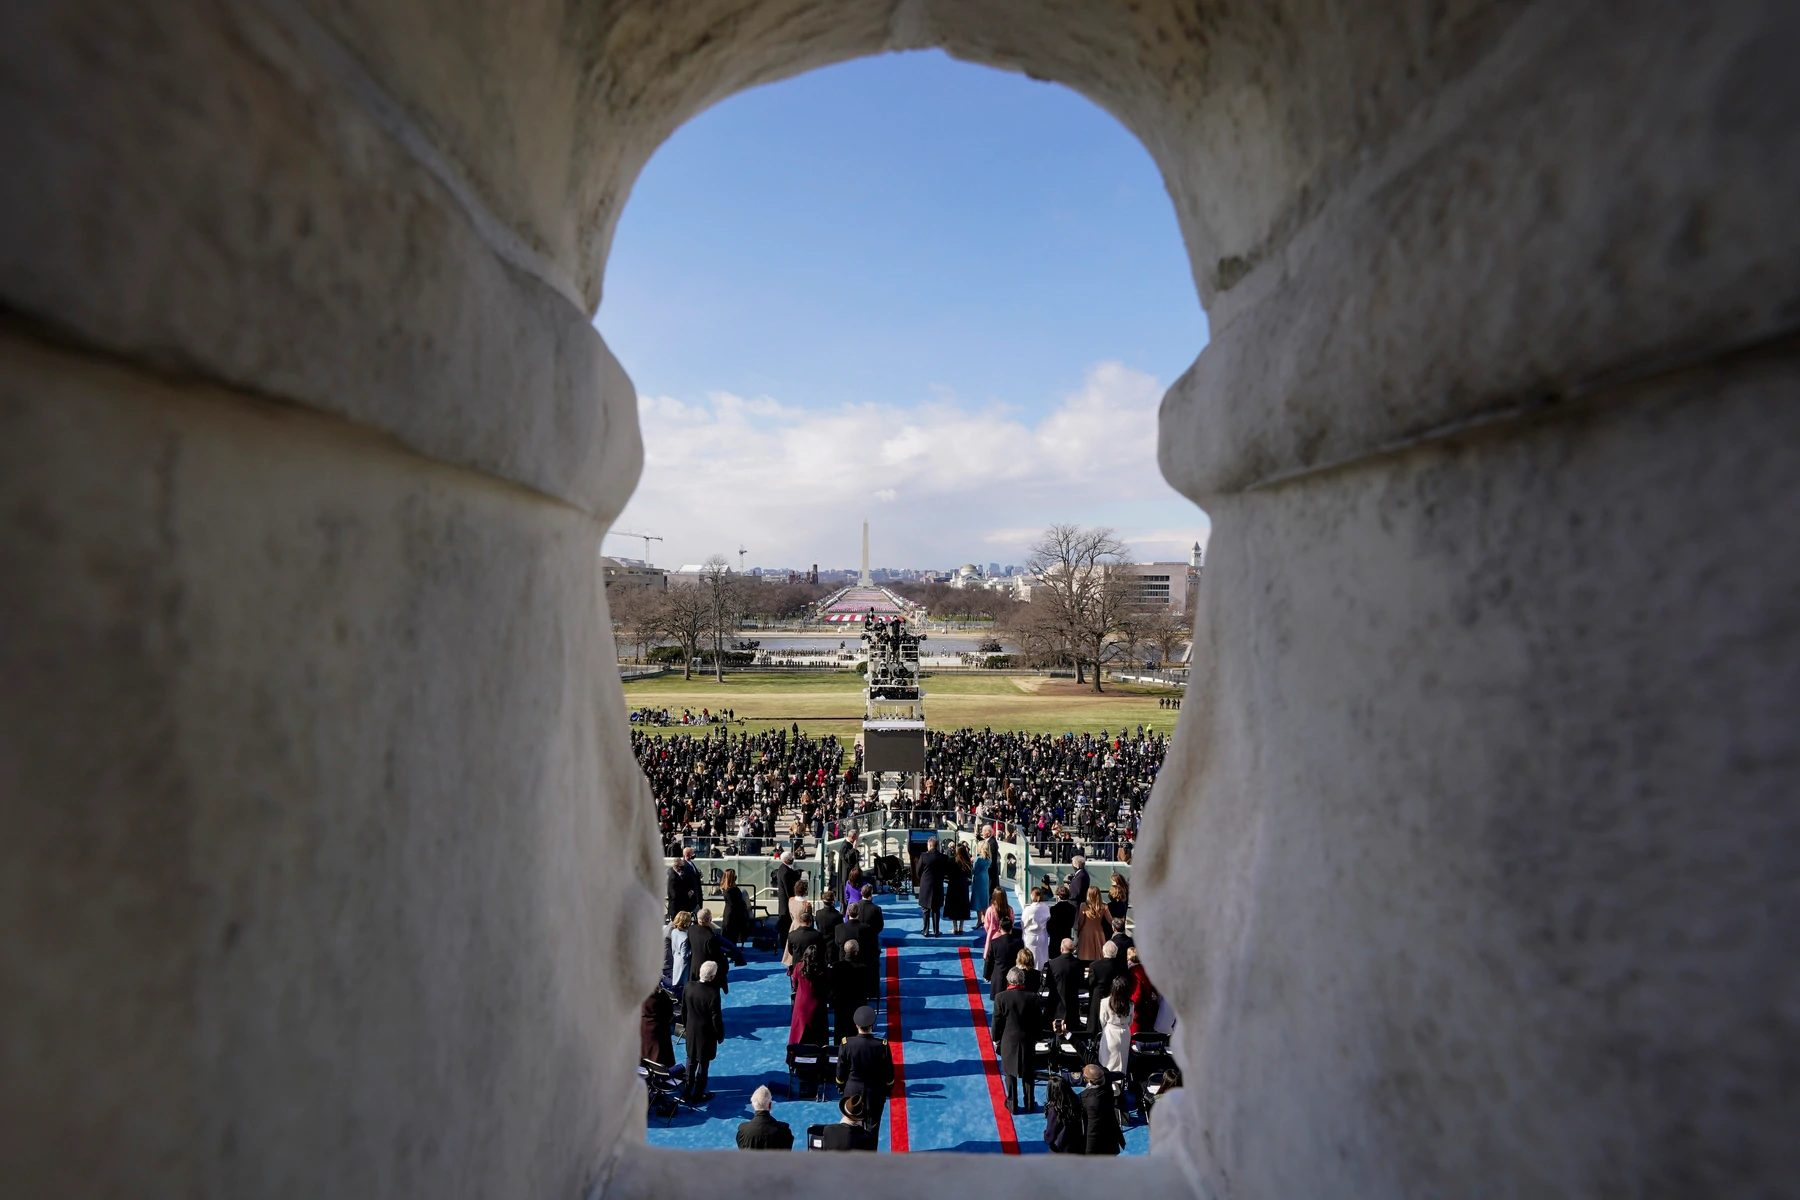 True Democracy Requires A Firm Hand: Inauguration Of Joe Biden, Compared To That Of Trump